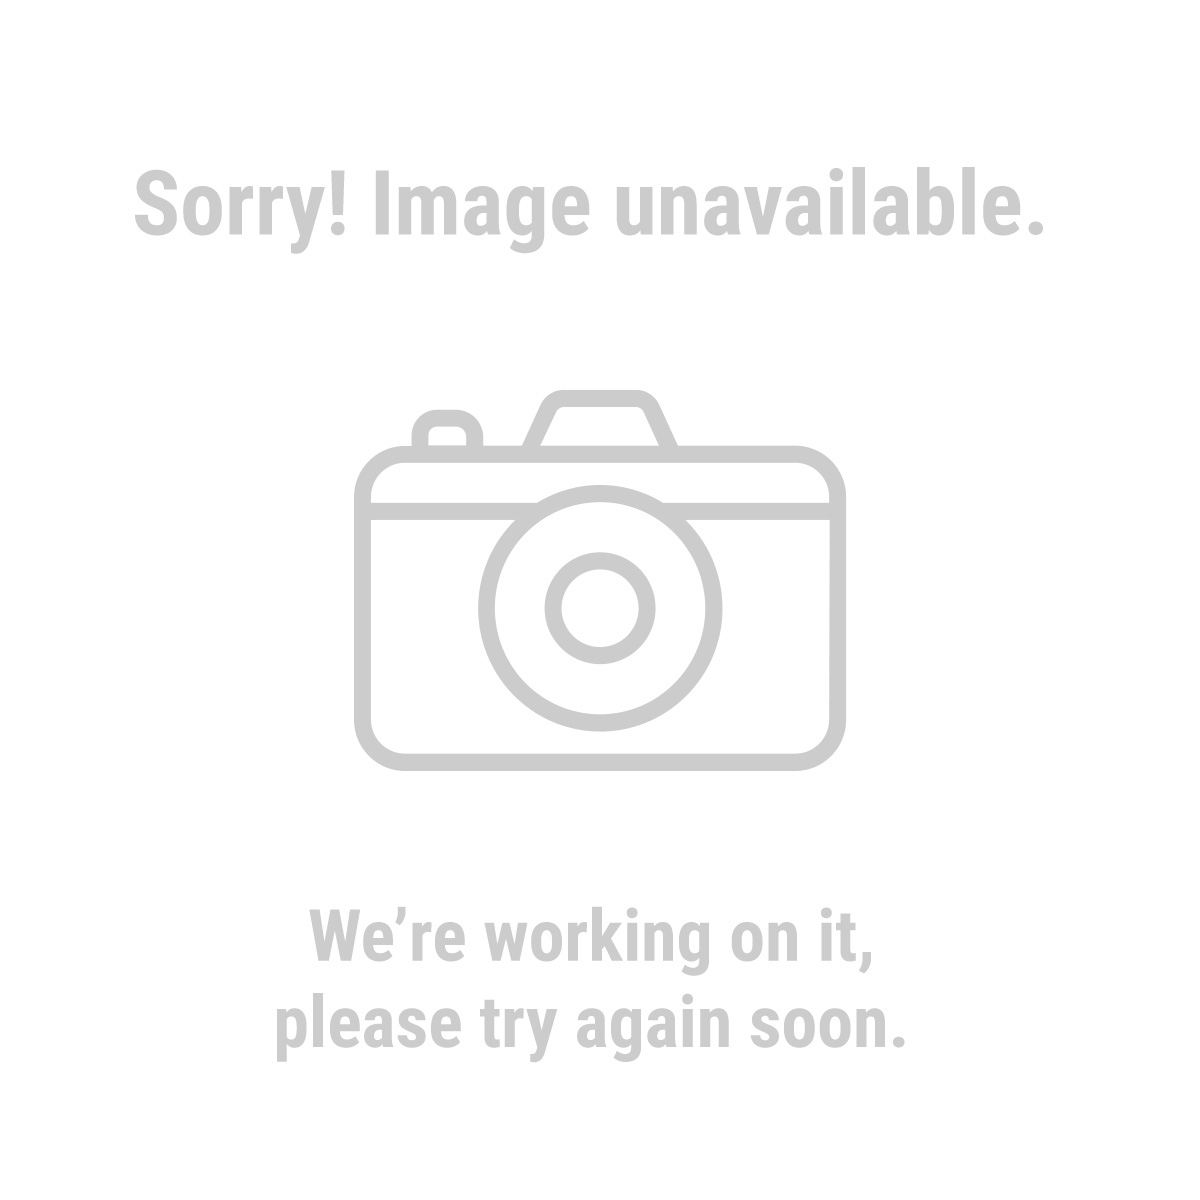 Warrior® 62795 12 in. SDS Masonry Bit Set 5 Pc